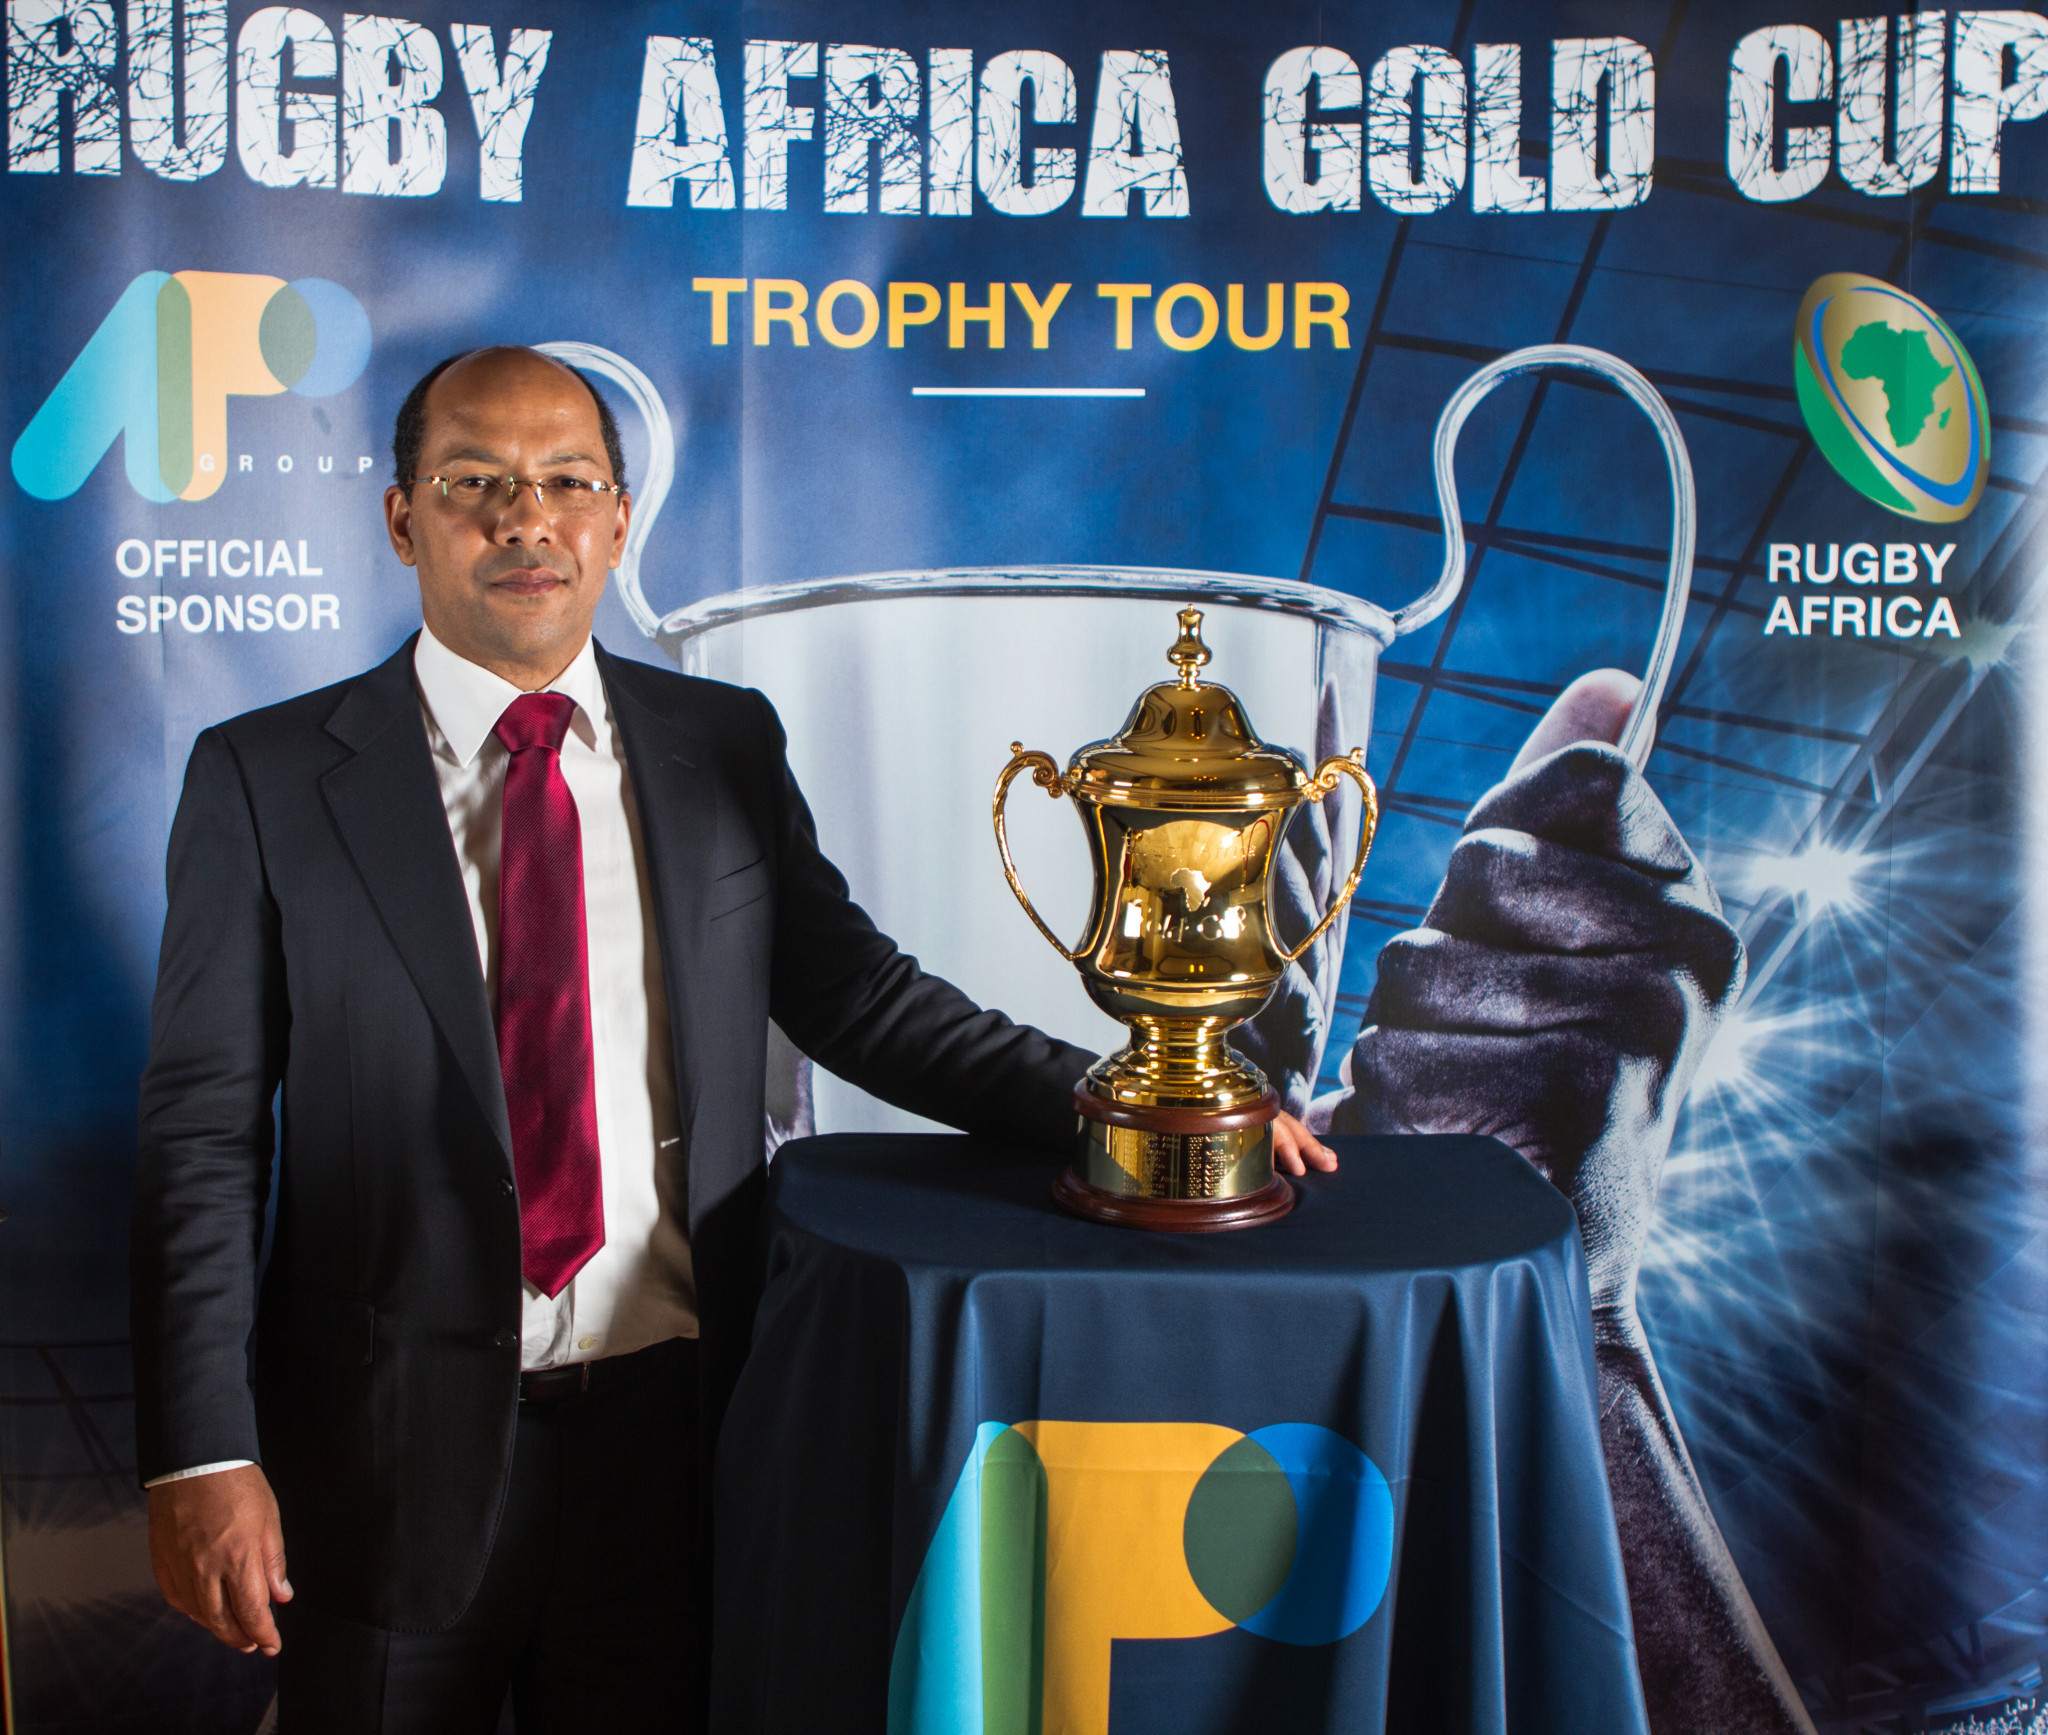 The winners of the Rugby Africa Gold Cup will get their hands on a 2019 Rugby World Cup spot as well as the Perpetual Trophy ©Getty Images